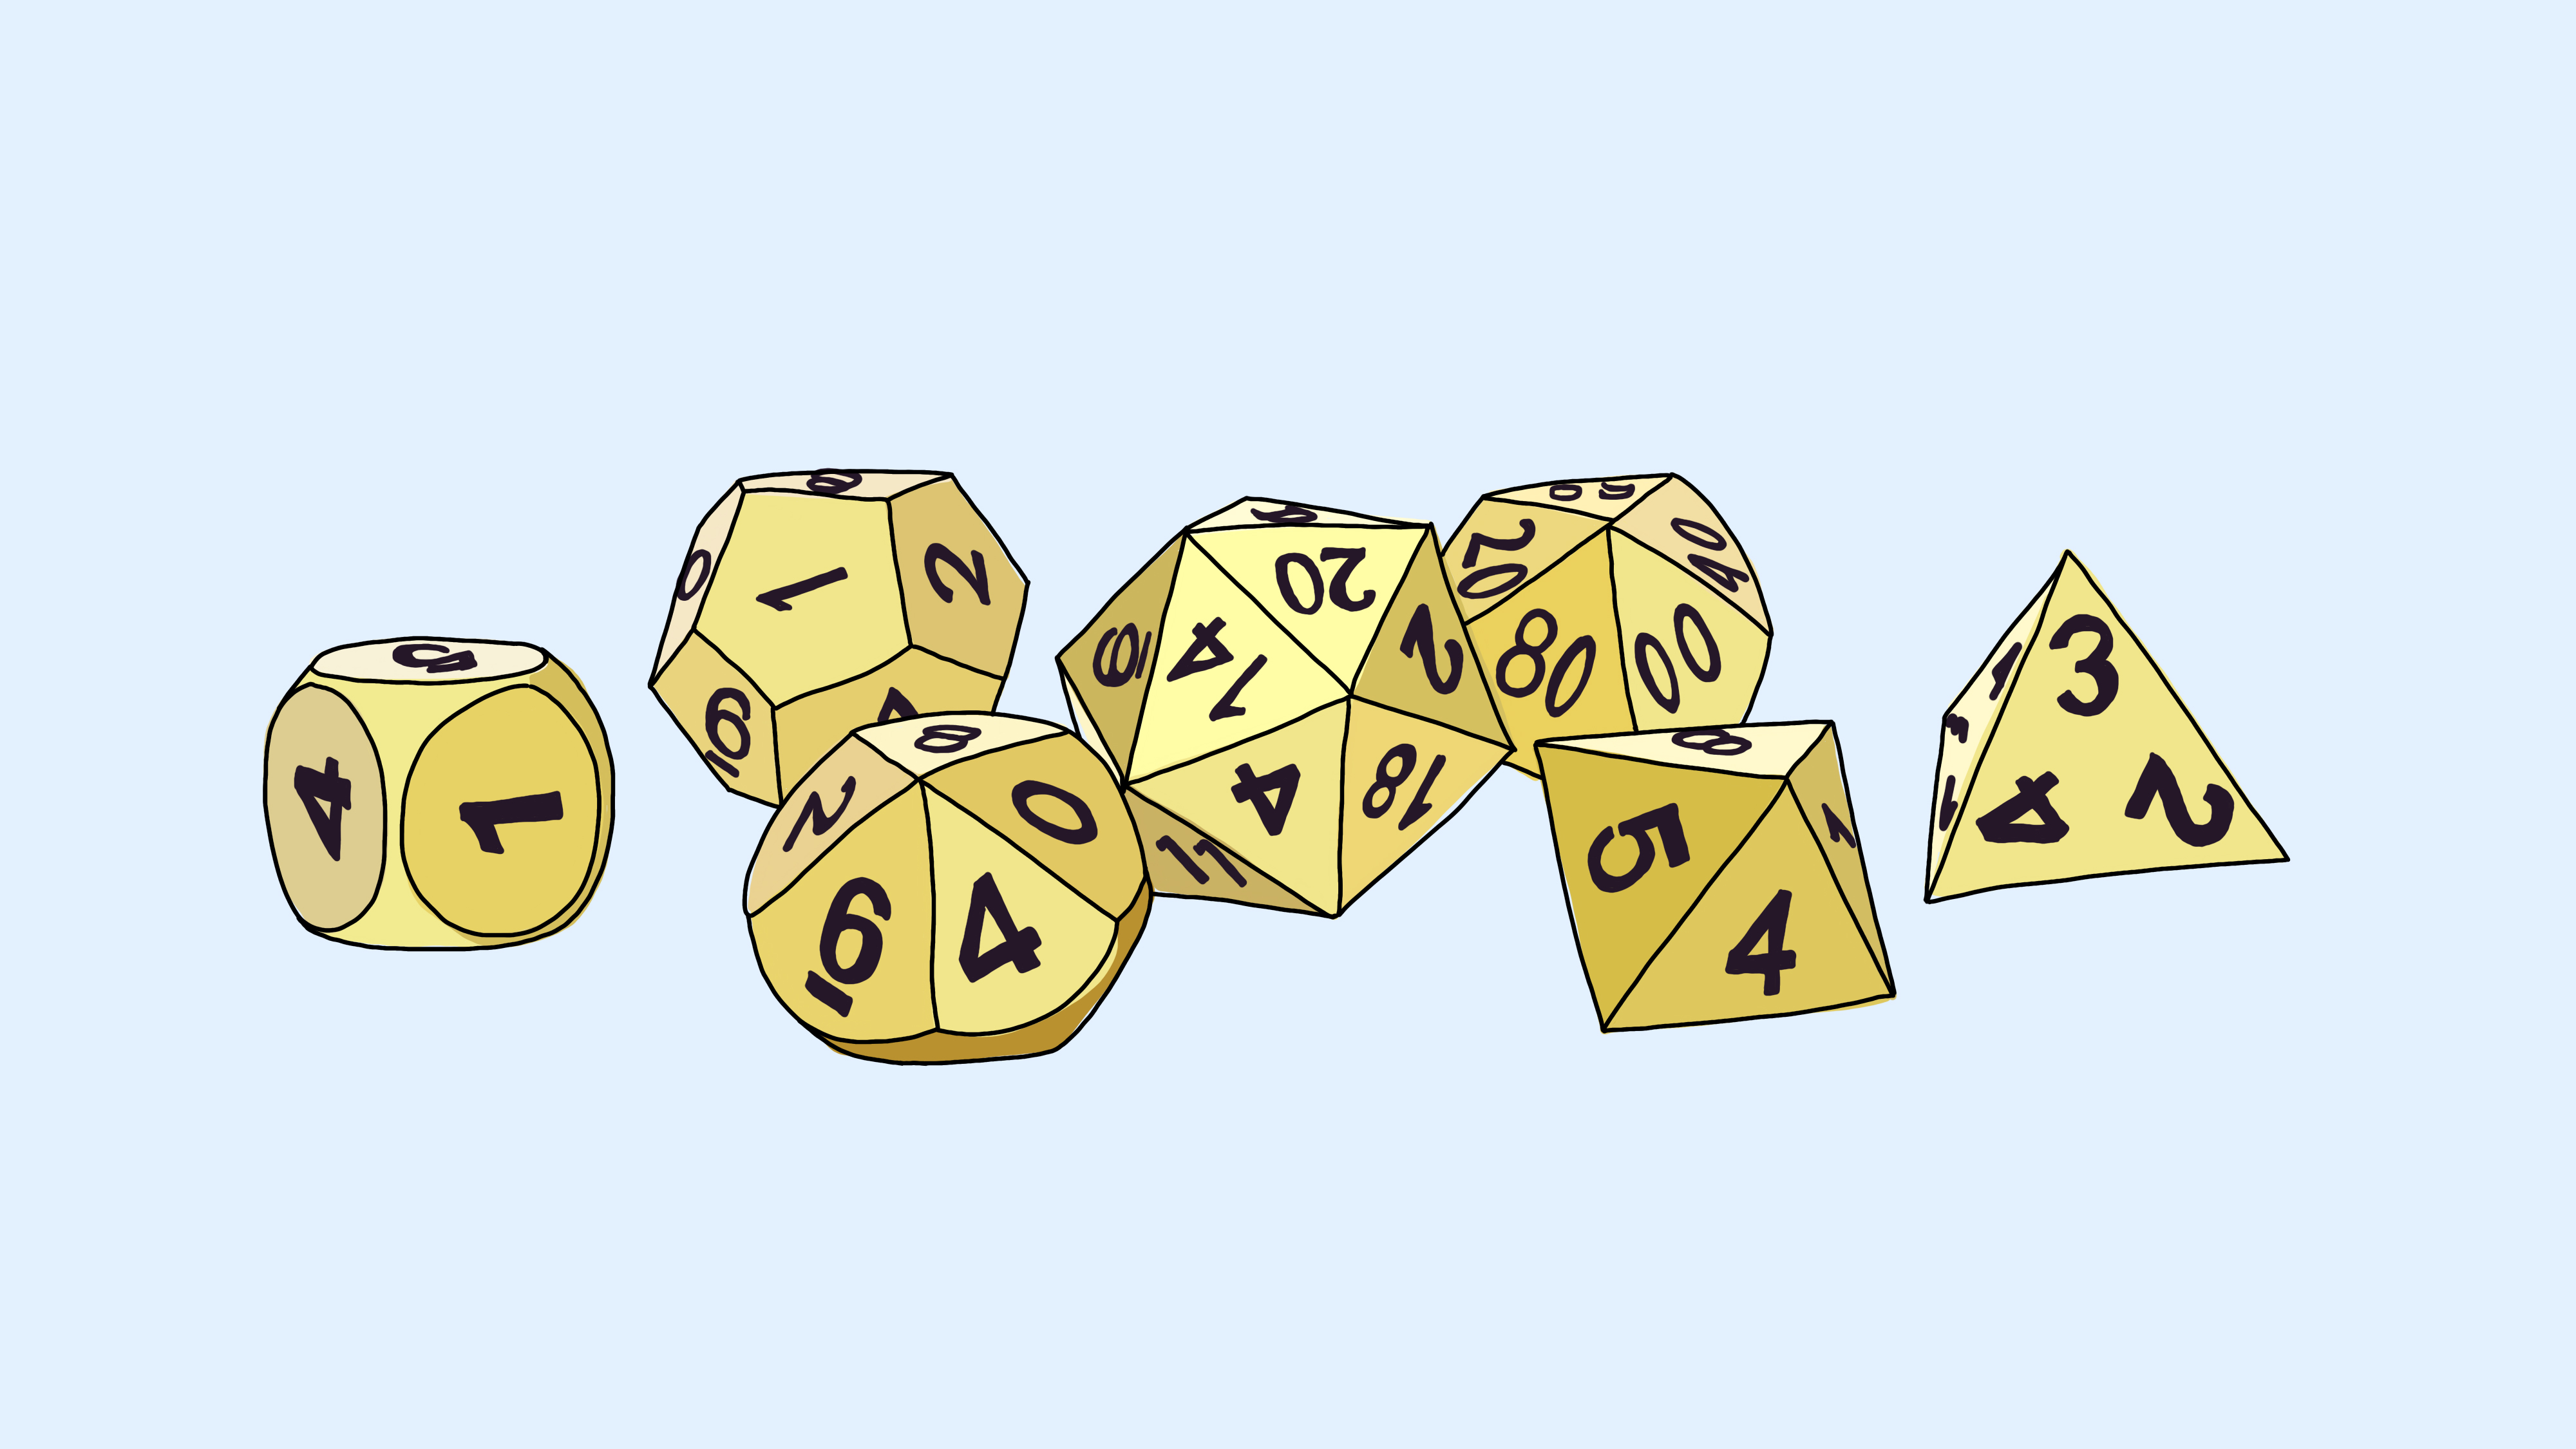 A set of many-sided dice.